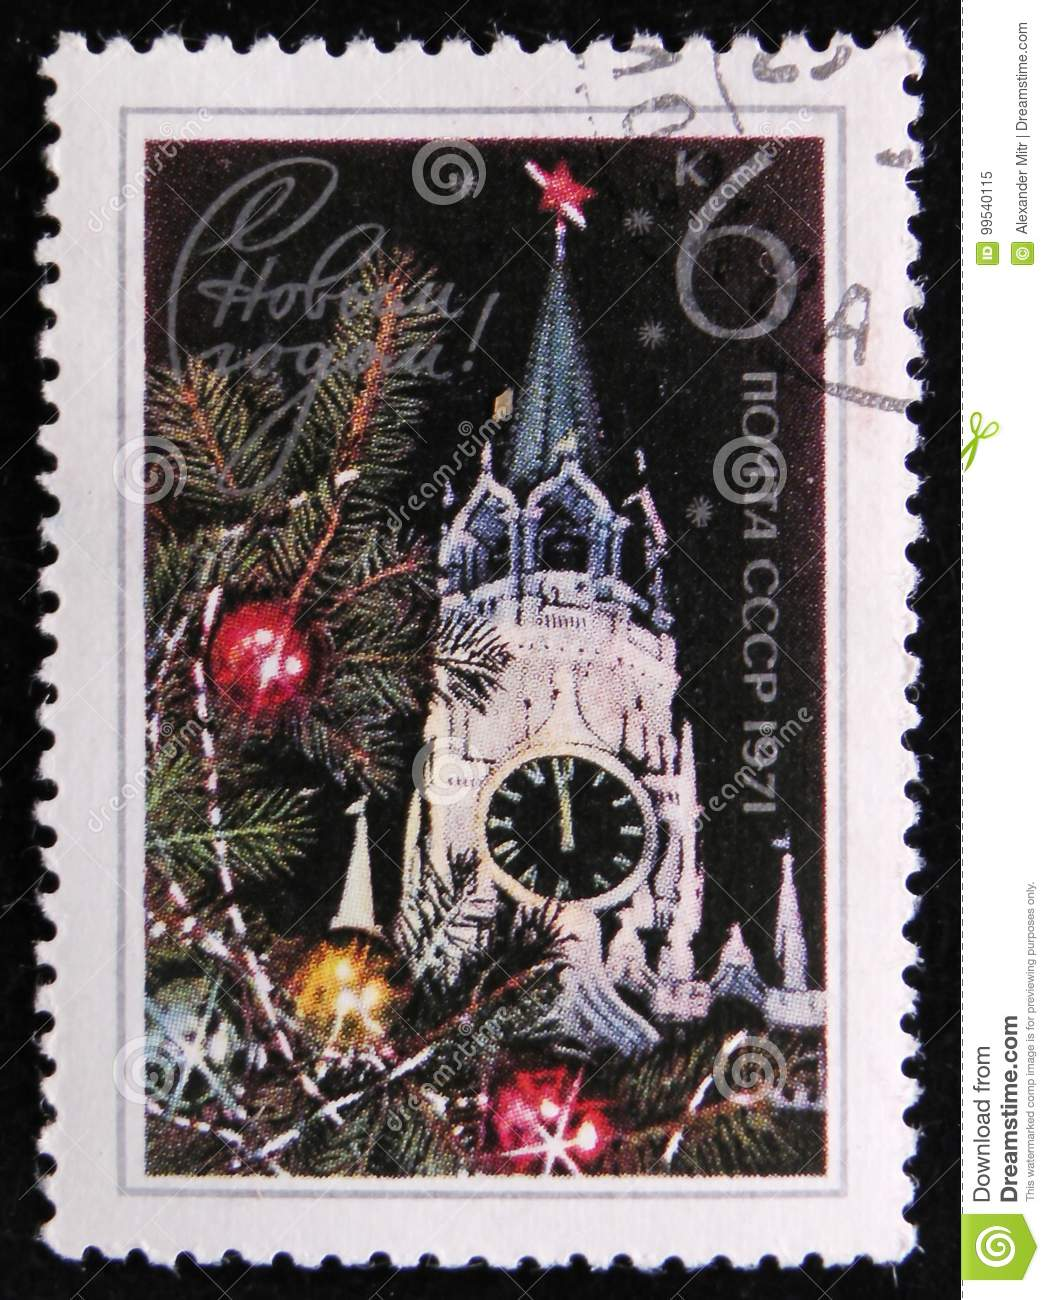 MOSCOW, RUSSIA - APRIL 2, 2017: A post stamp printed in USSR shows Spasski Tower and Fir Branch, Kremlin, New Year 1971, circa